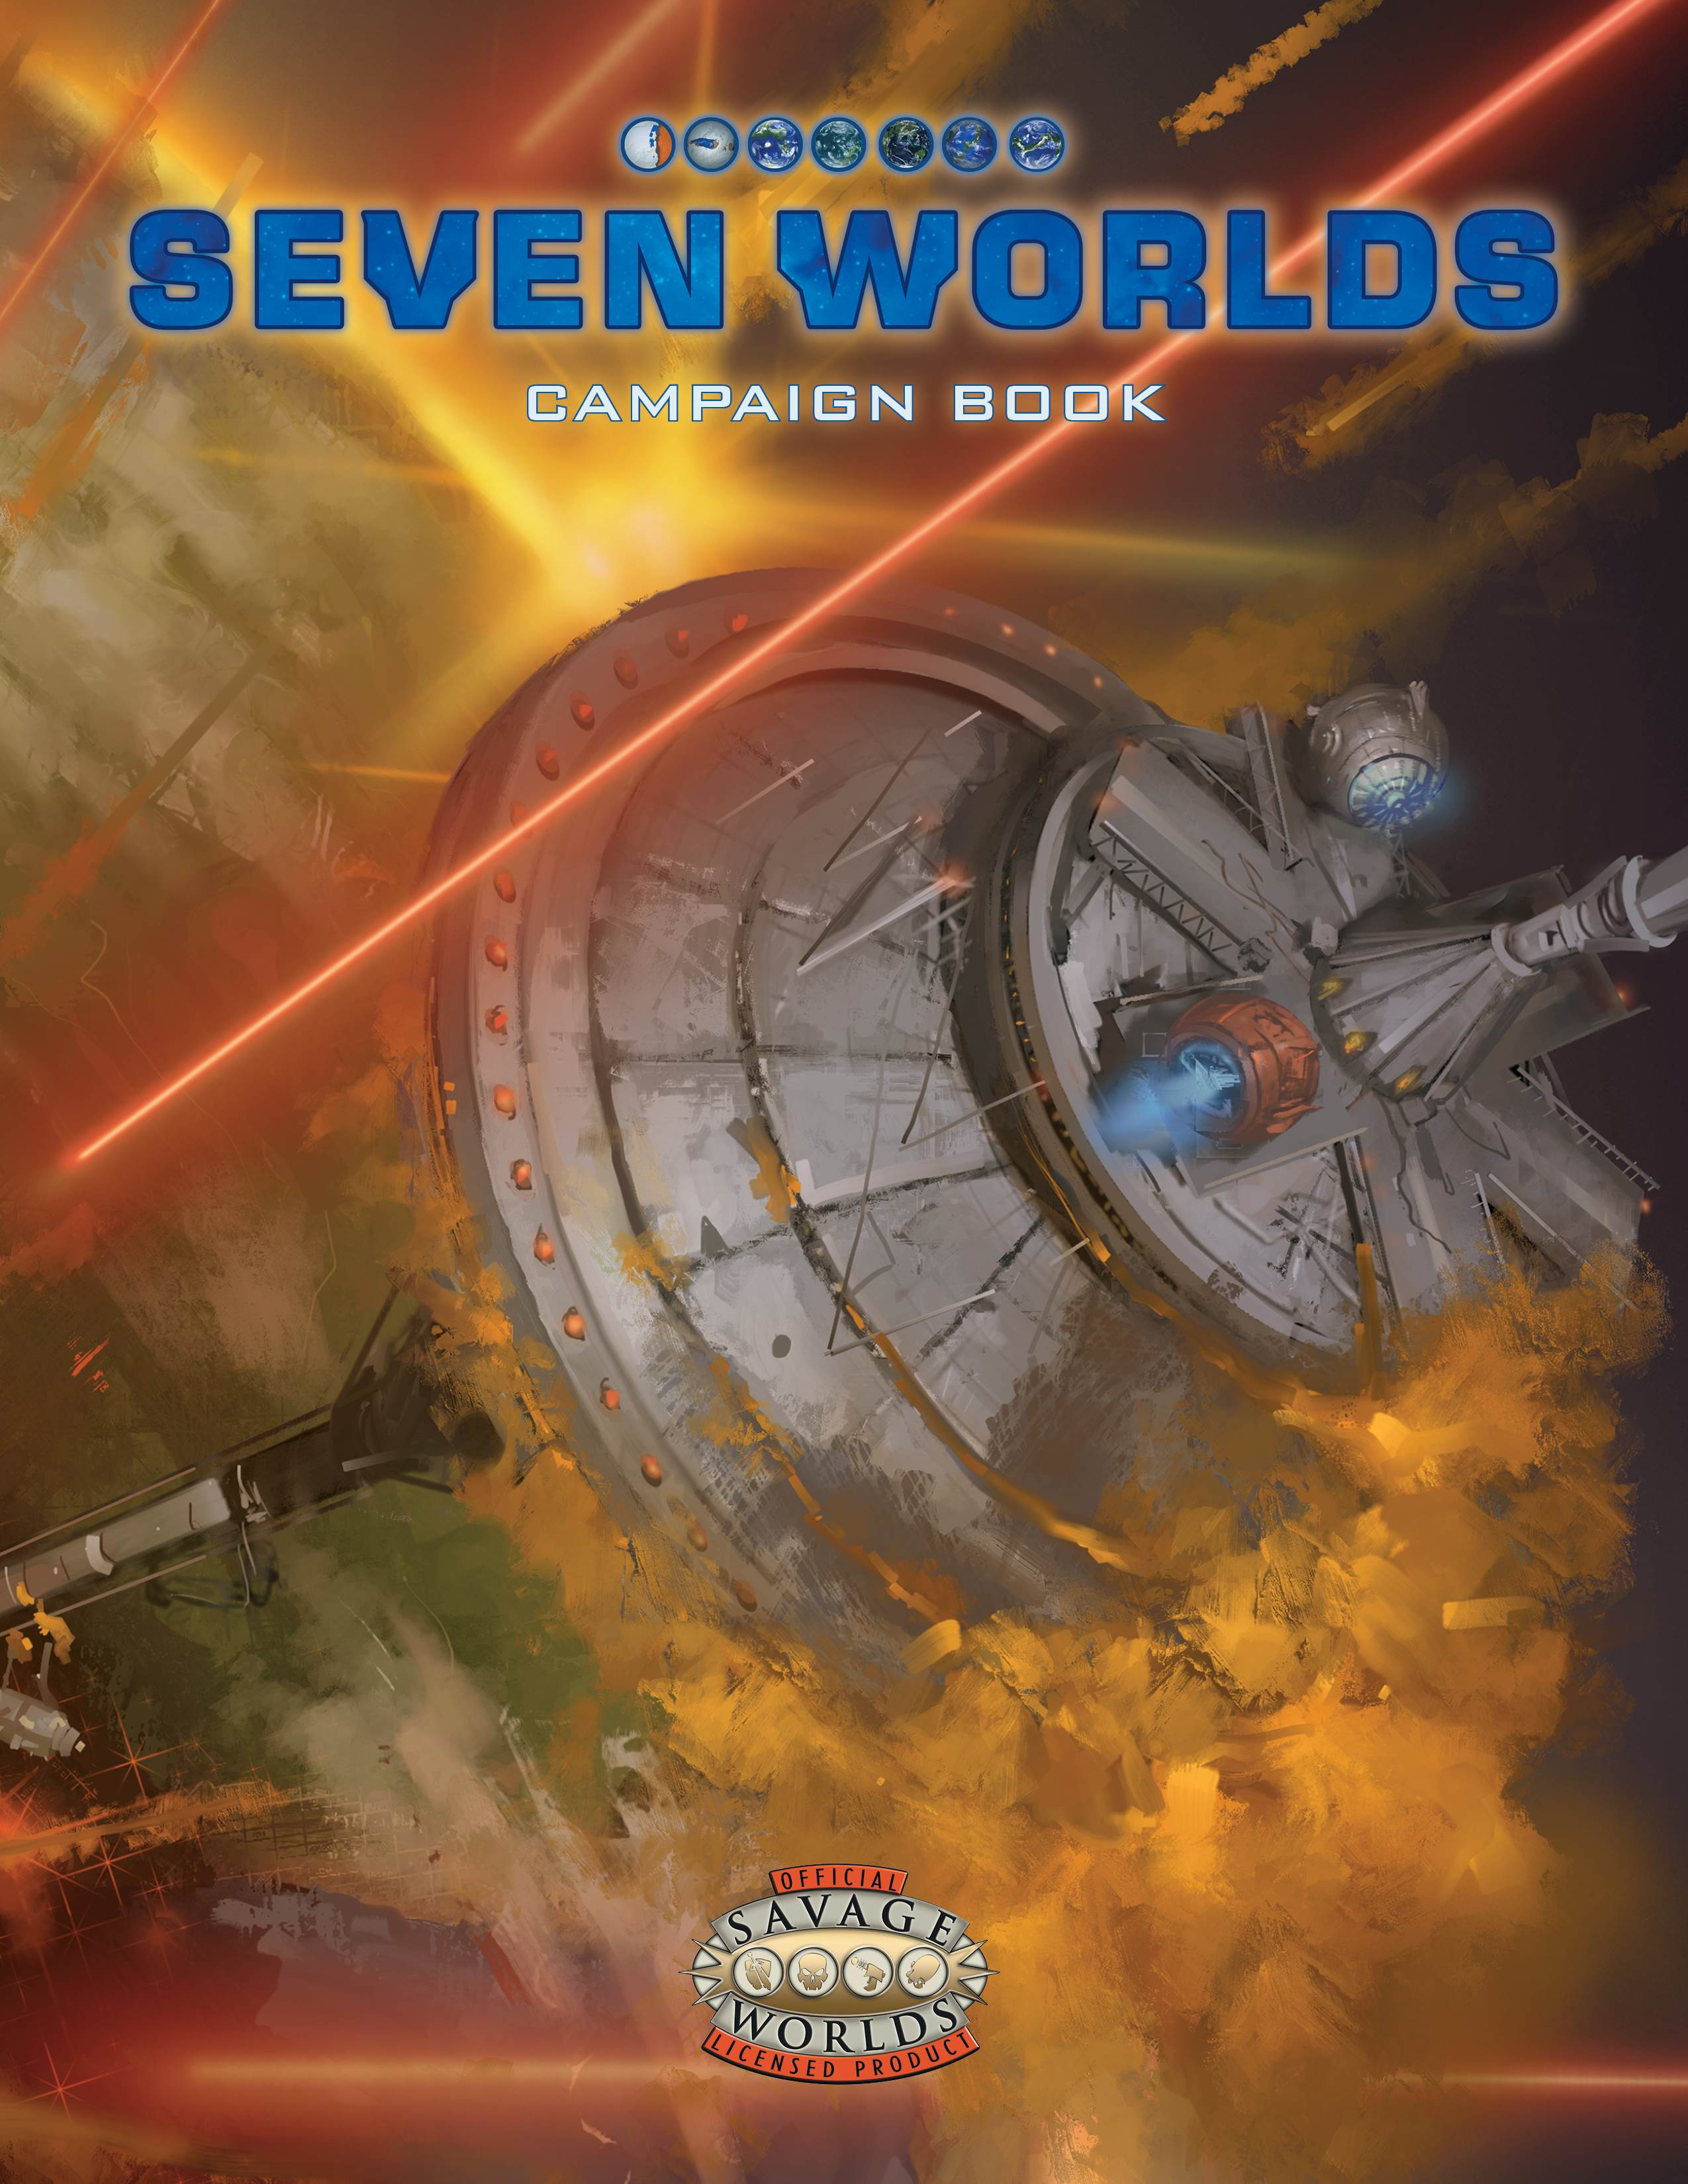 Seven Worlds Campaign Book